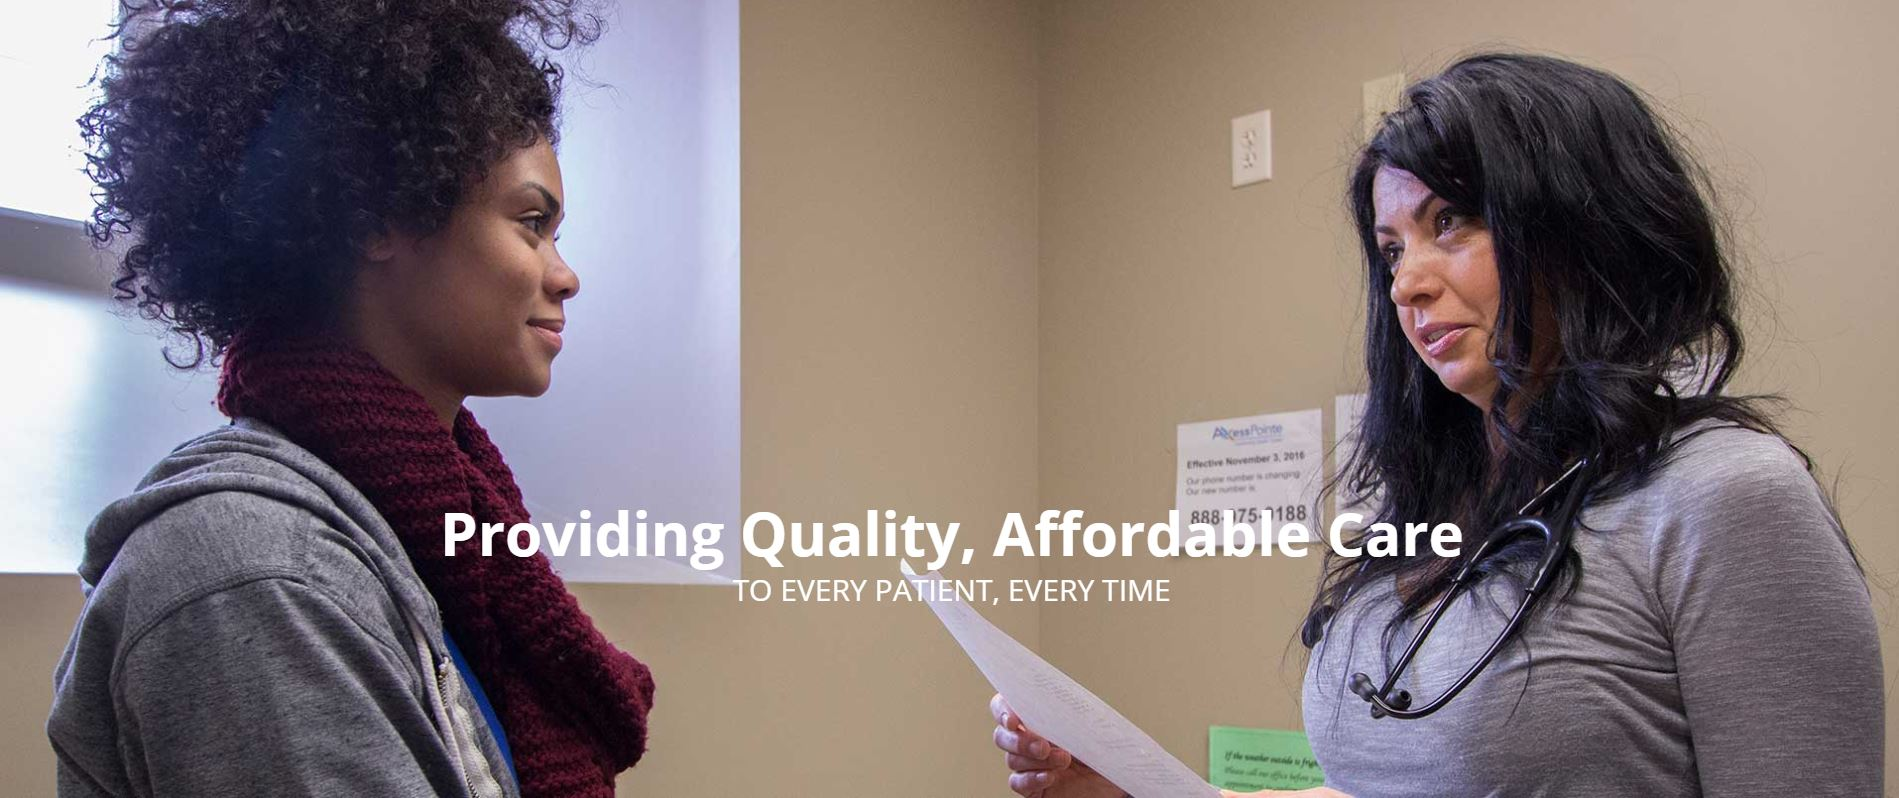 women's health - AxessPointe Community Health Centers - Affordable Dental Care